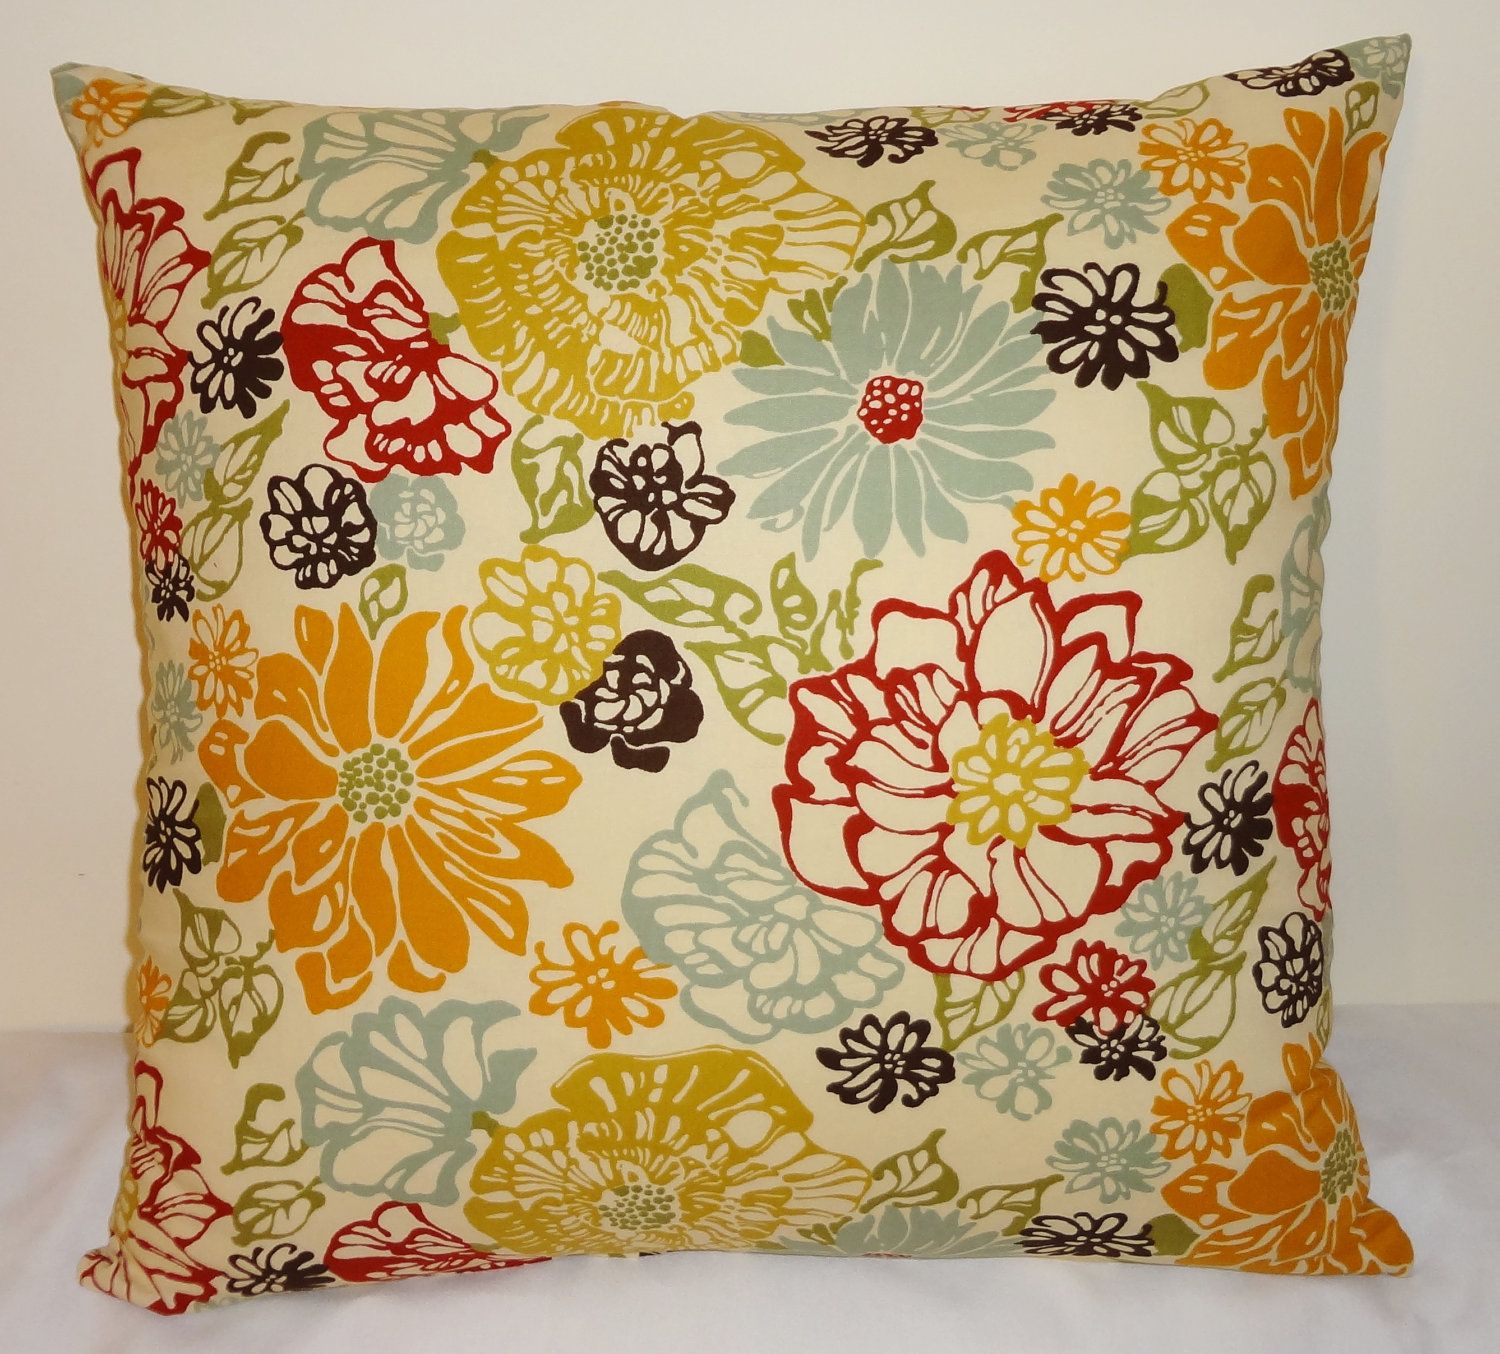 Decorative pillows with blue brown and yellow - Decorative Pillow Accent Pillow Richloom Invigorate Large Floral Red Blue Yellow Brown 20x20 22 00